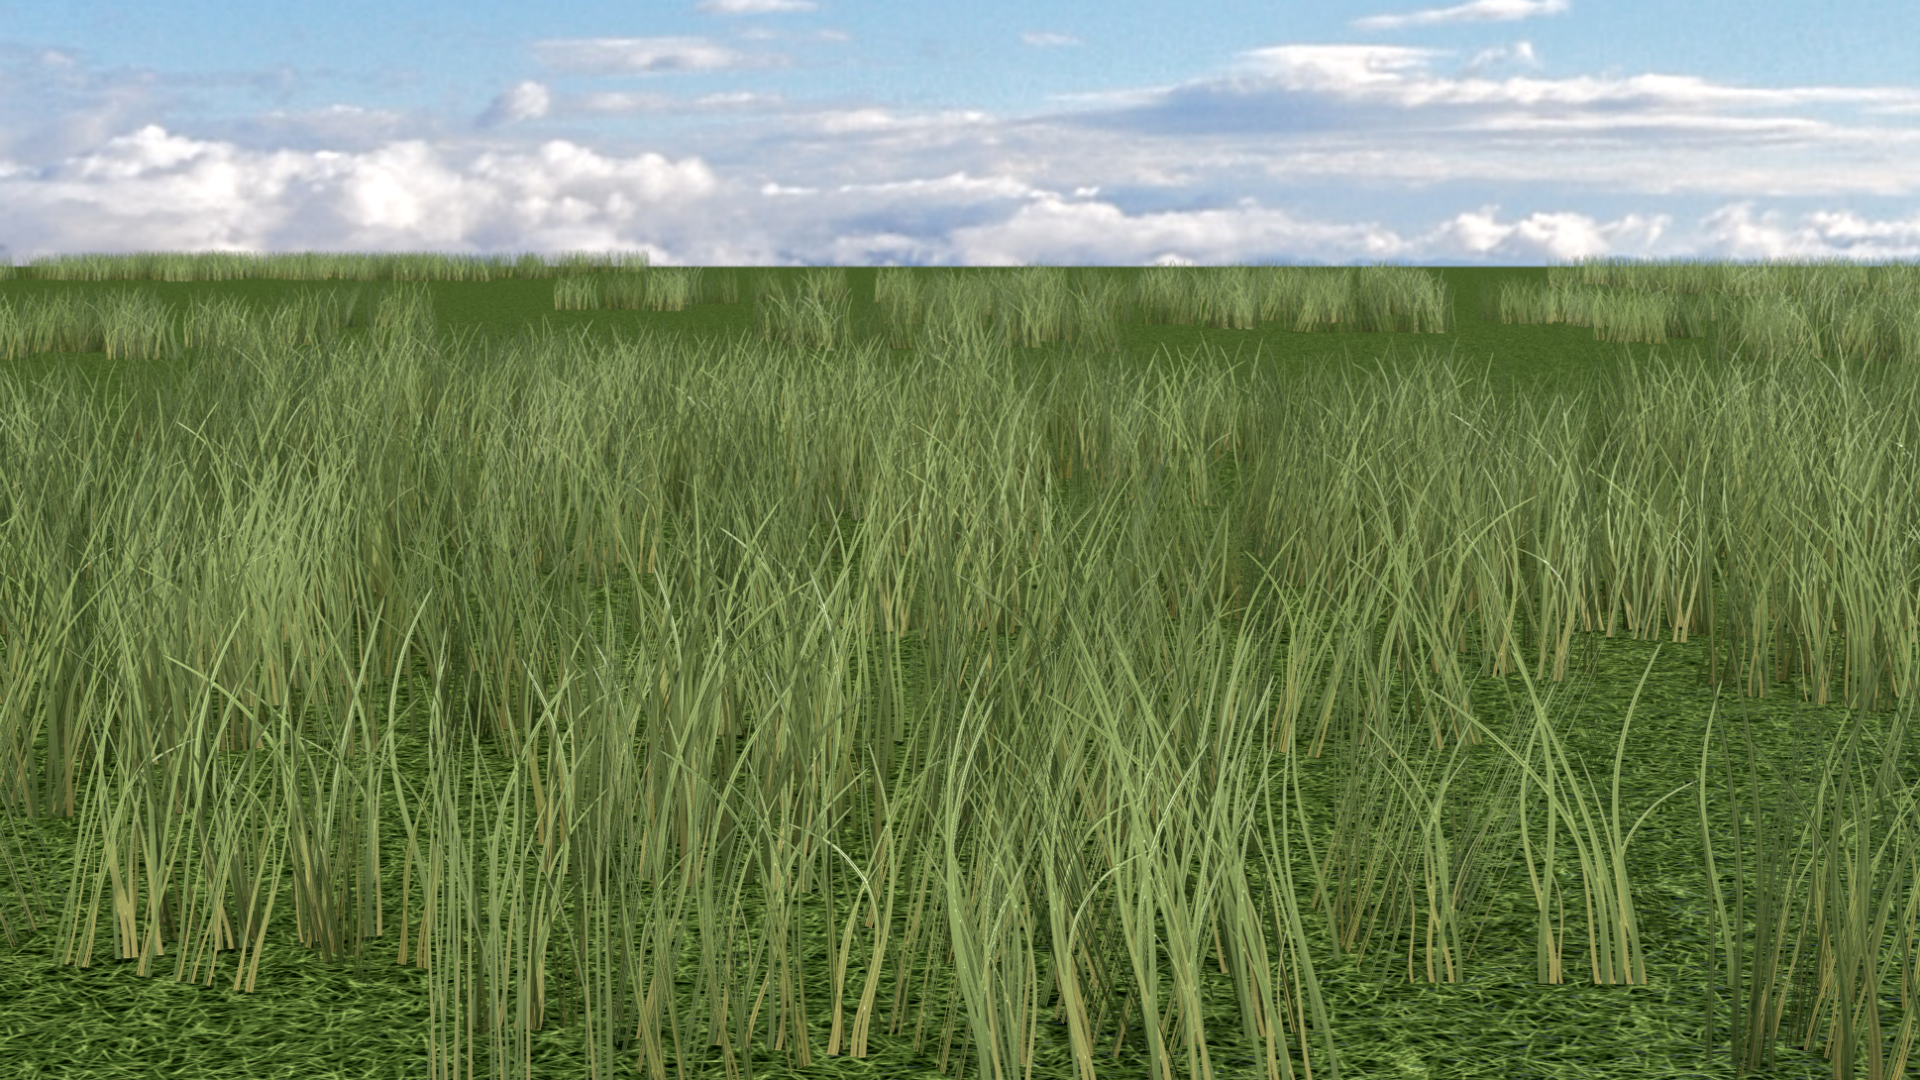 Tall grass test